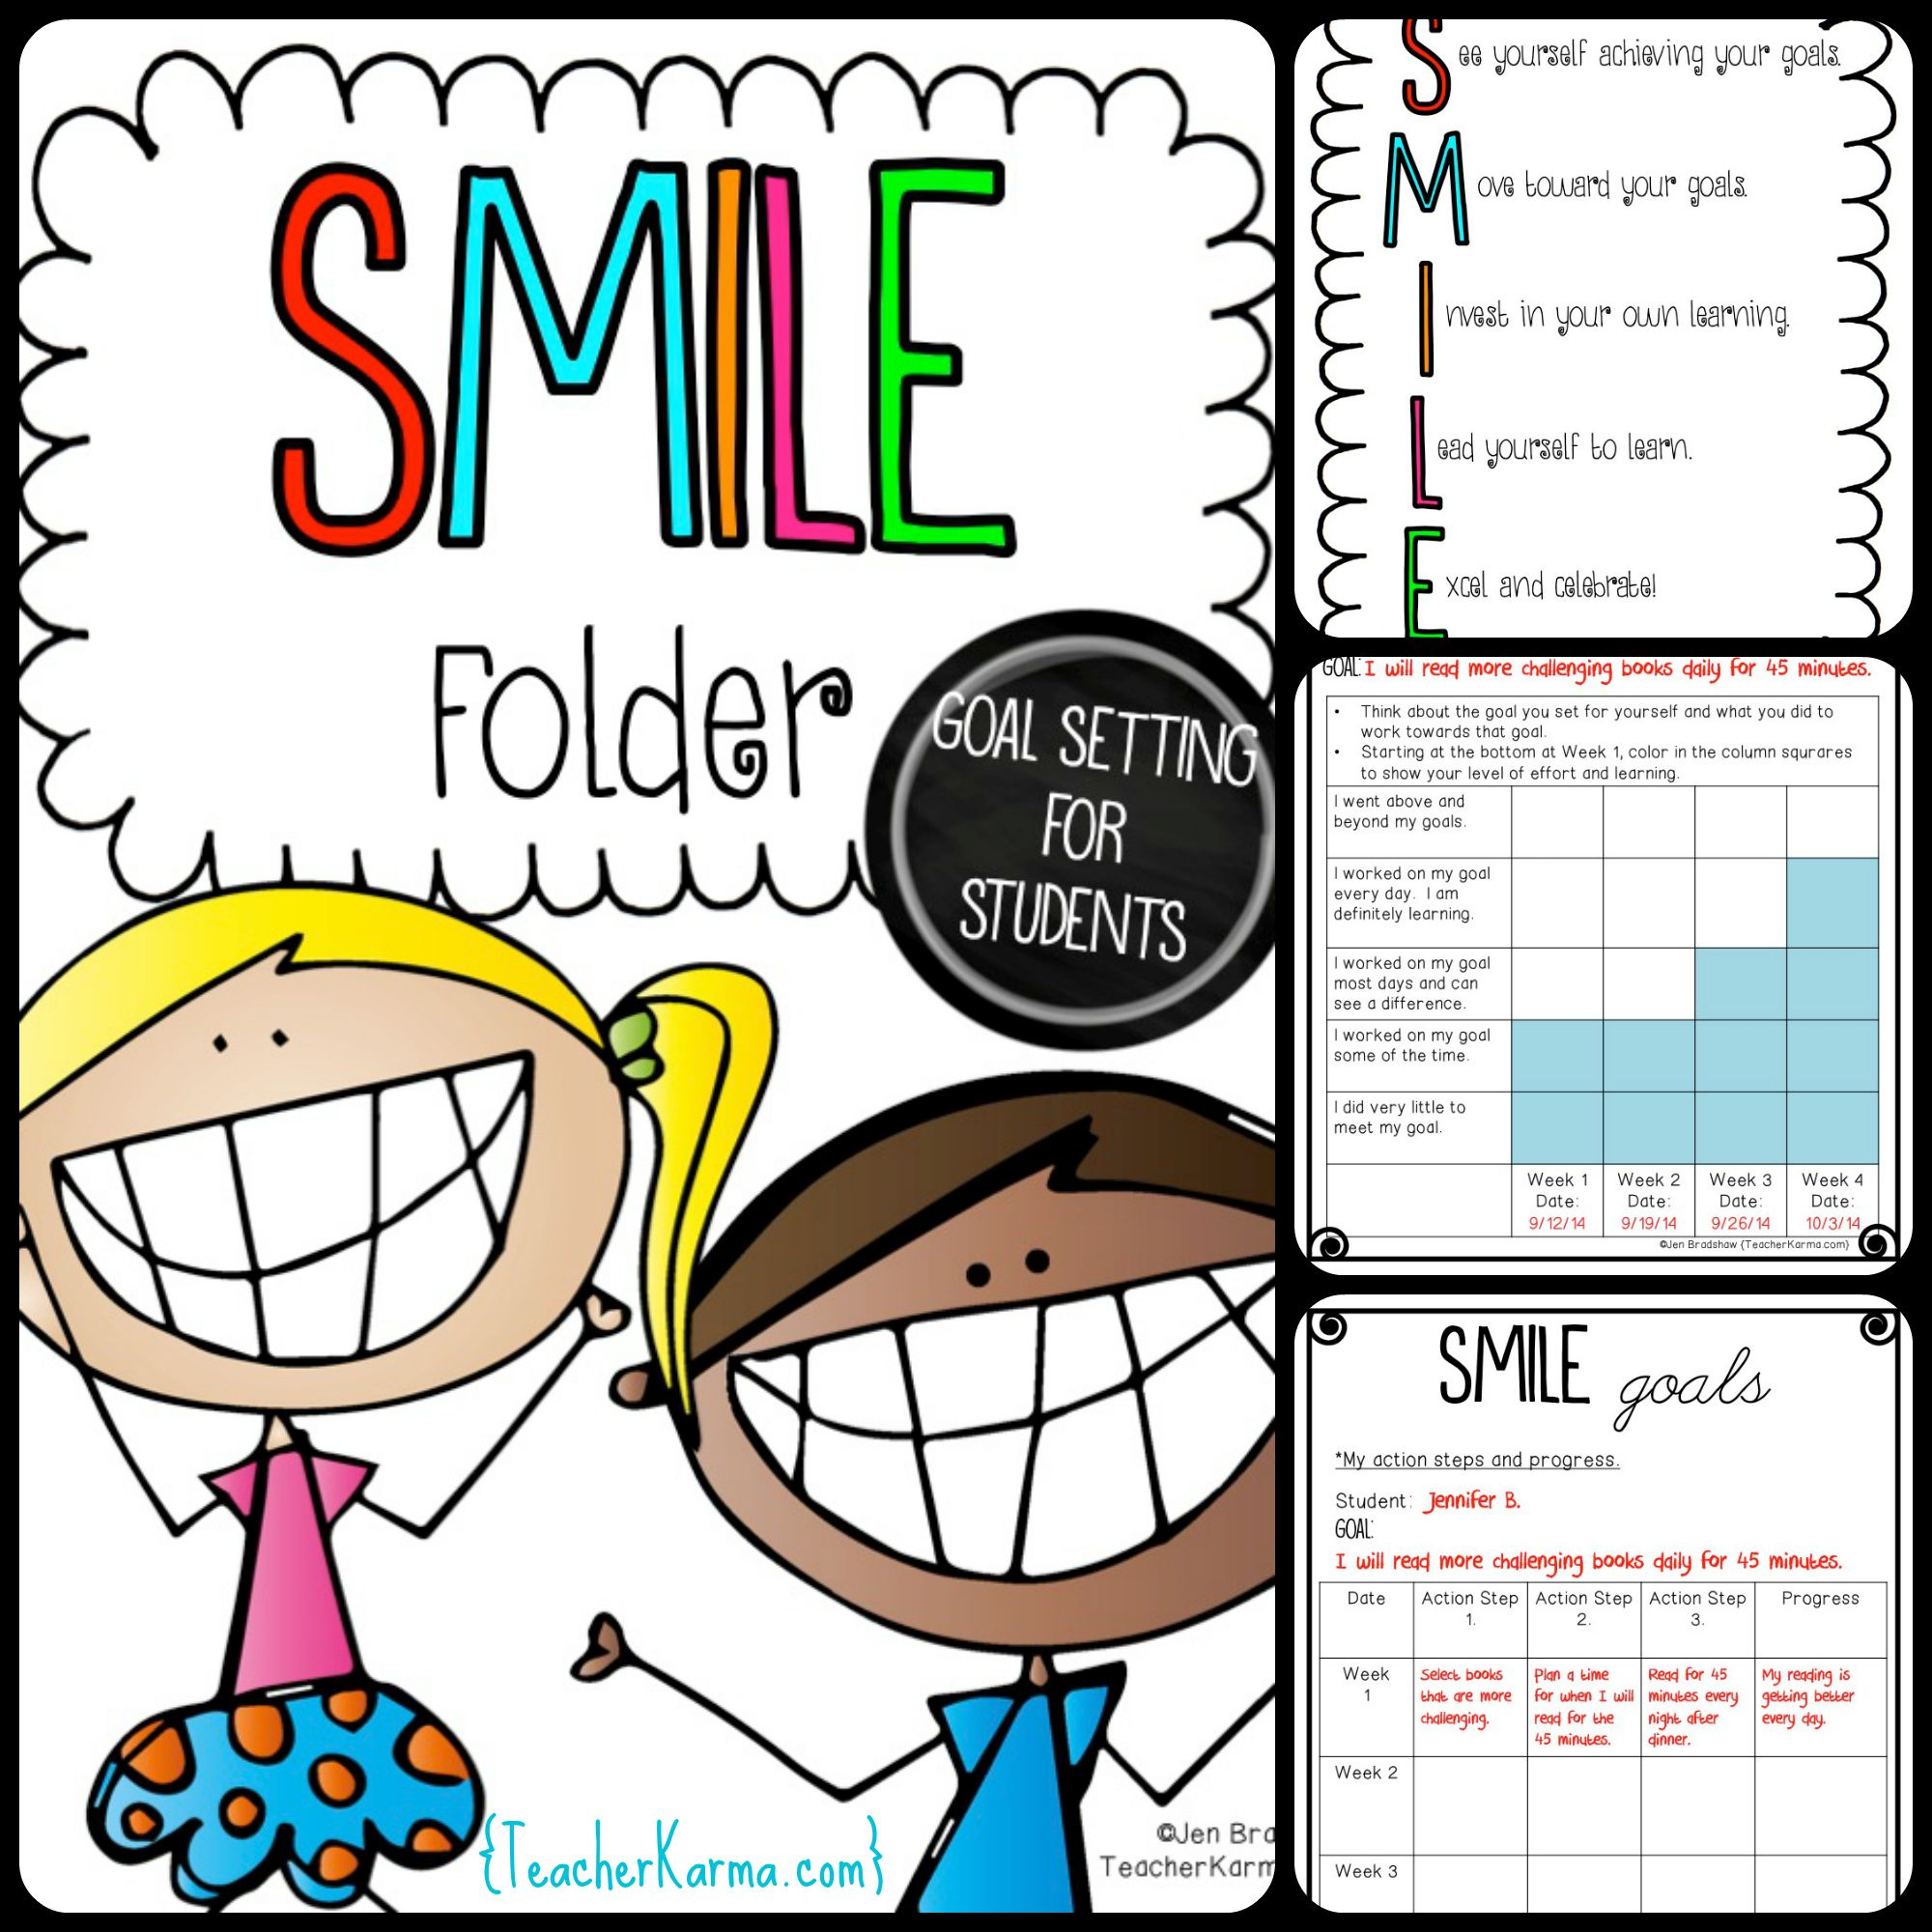 Setting Goals With Students Rti Smile Goals For Making